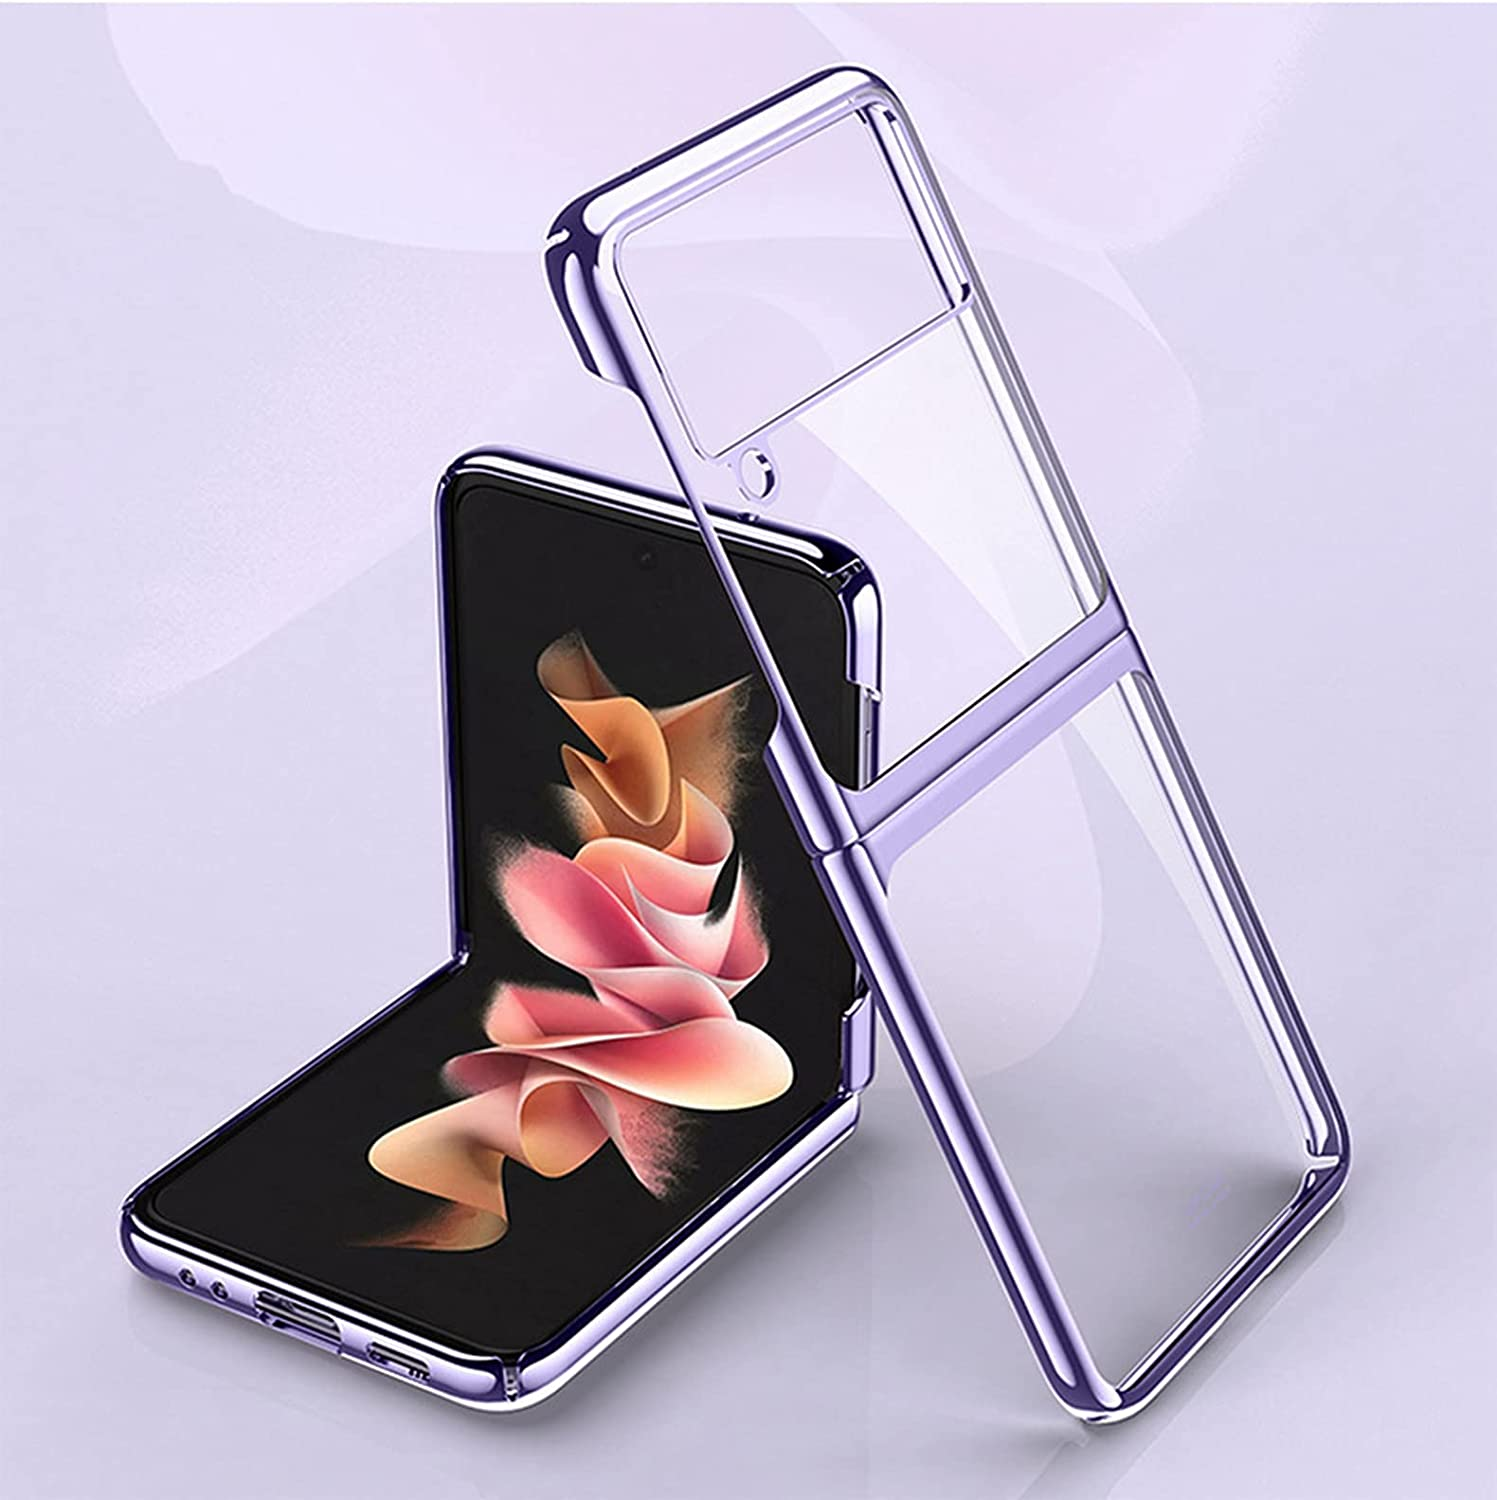 Z Flip 3 Case, Slim Case for Samsung Galaxy Z Flip 3, Luxury Transparent Plating PC Crystal Cove Finish Anti-Scratch Shockproof Protective Case for Samsung Galaxy Z Flip 3 5G. (Purple)